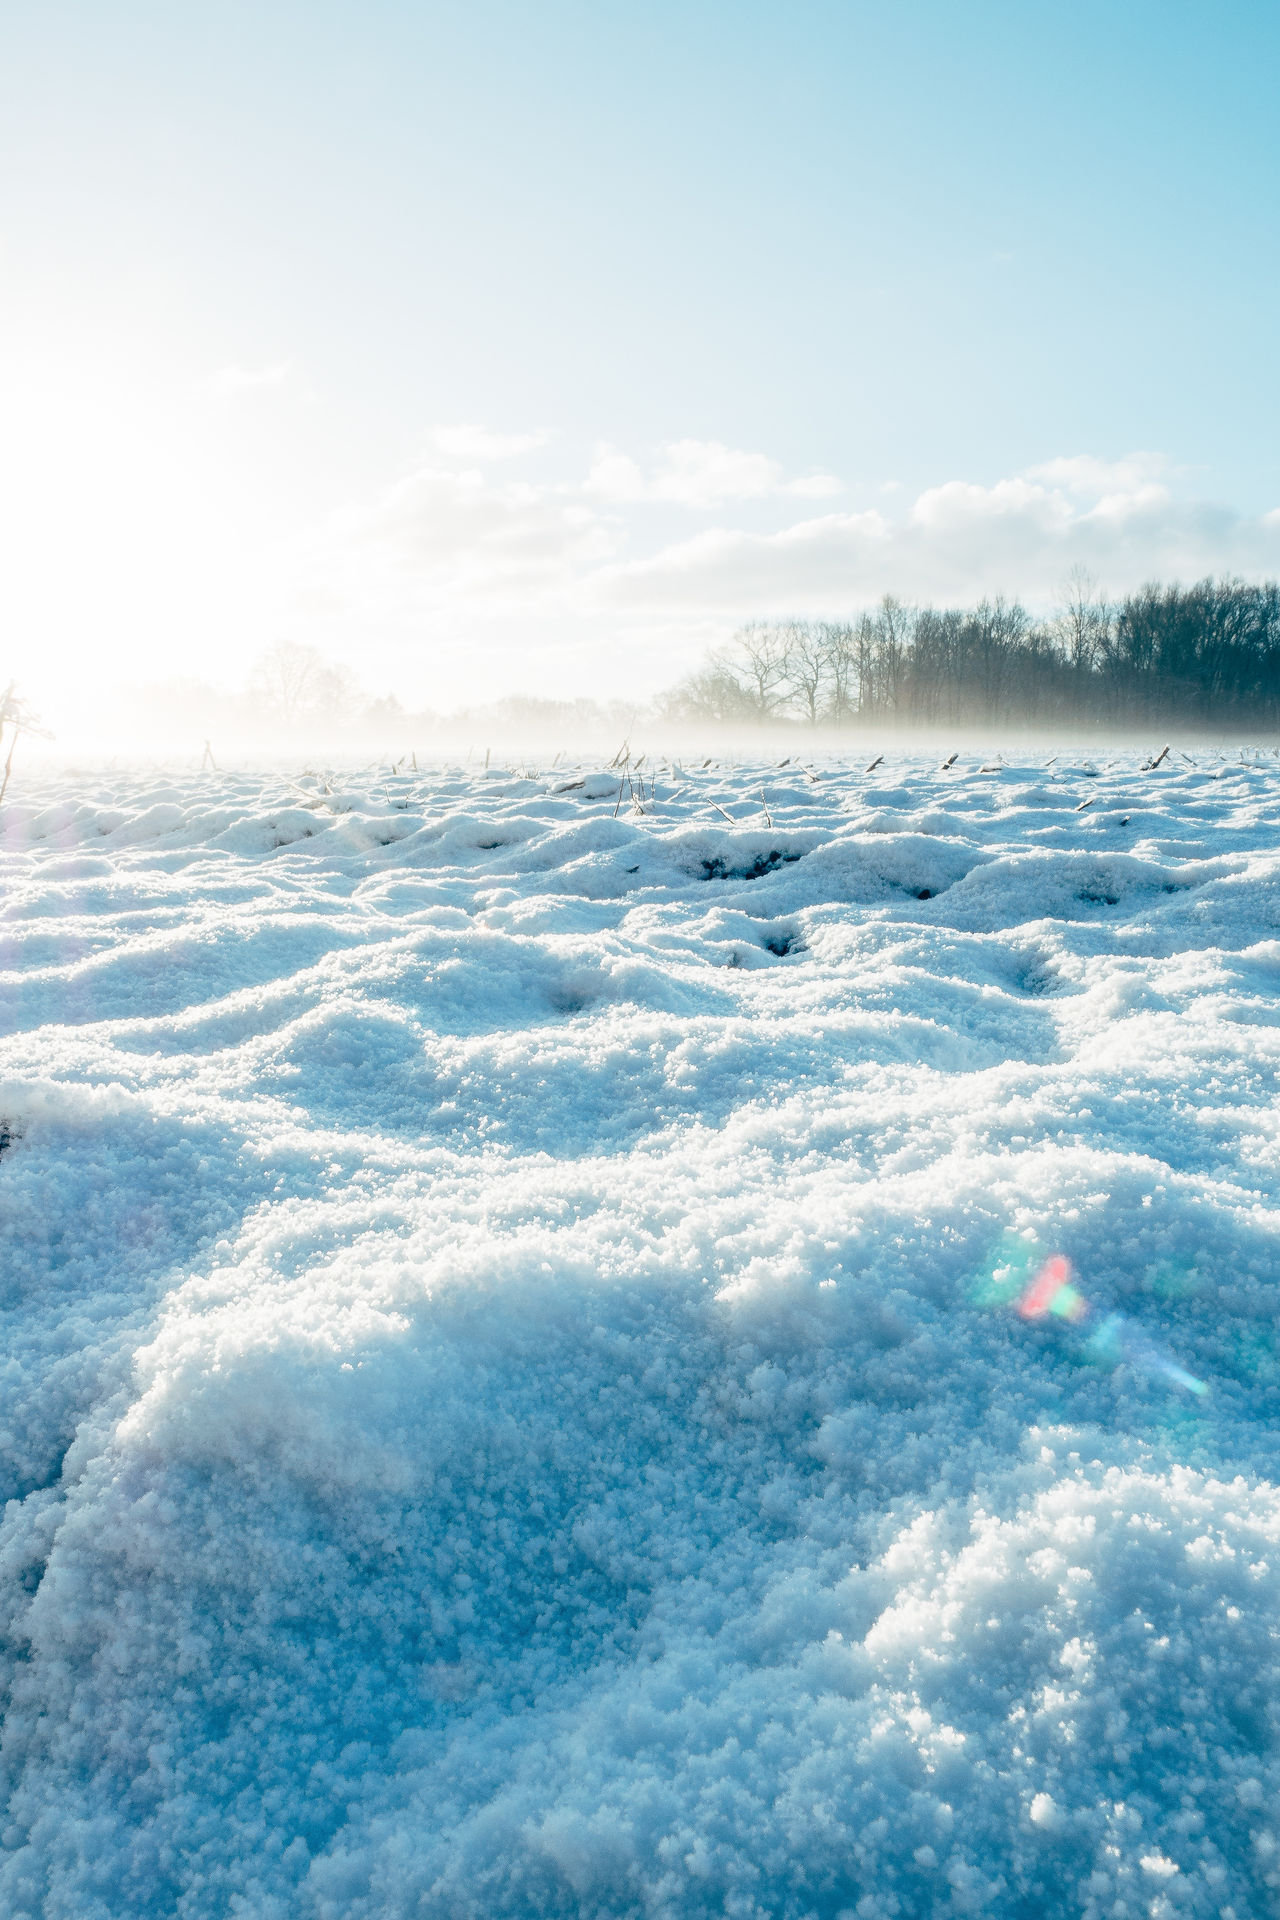 North Germany | Winter Backgrounds Beauty Beauty In Nature Blue Cloud - Sky Cold Temperature Day Freshness Frozen Ice Landscape Nature No People Outdoors Polar Climate Scenics Sea Sky Snow Water Winter